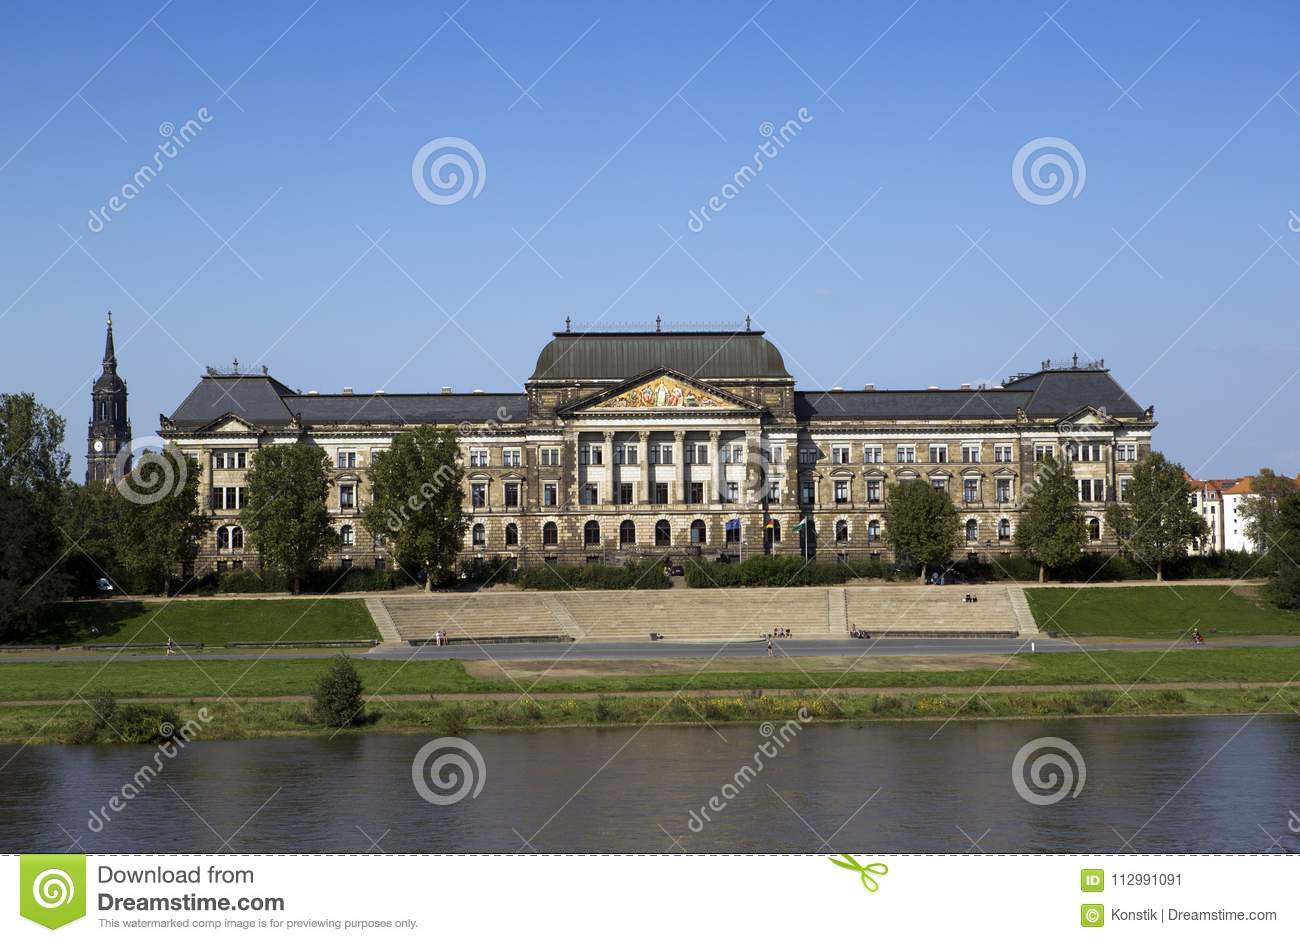 Dresden. Saxon State Ministry of Finance building on the Elbe river